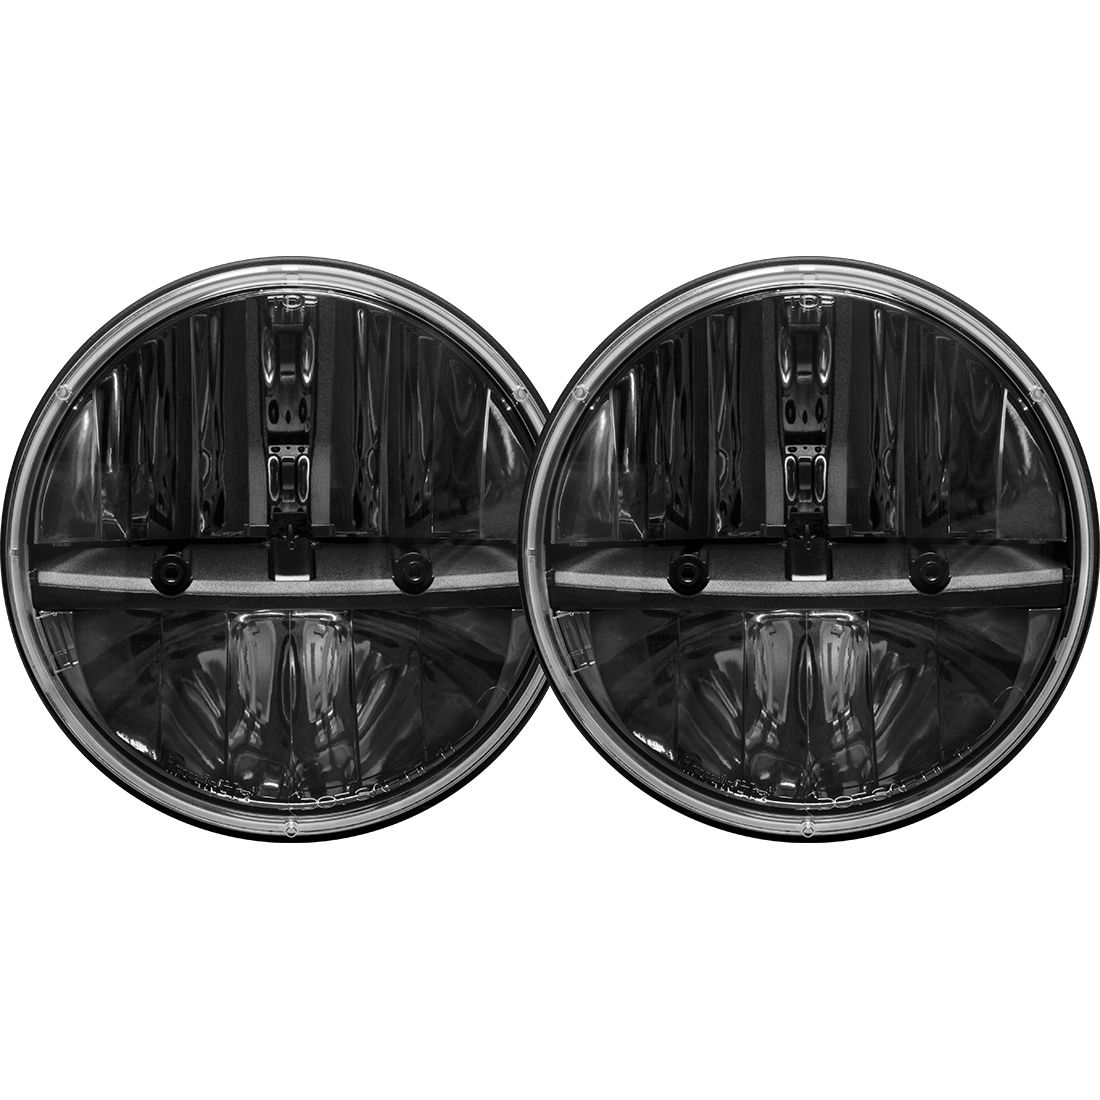 Rigid Industries Truck-Lite Series Round Headlights 7in